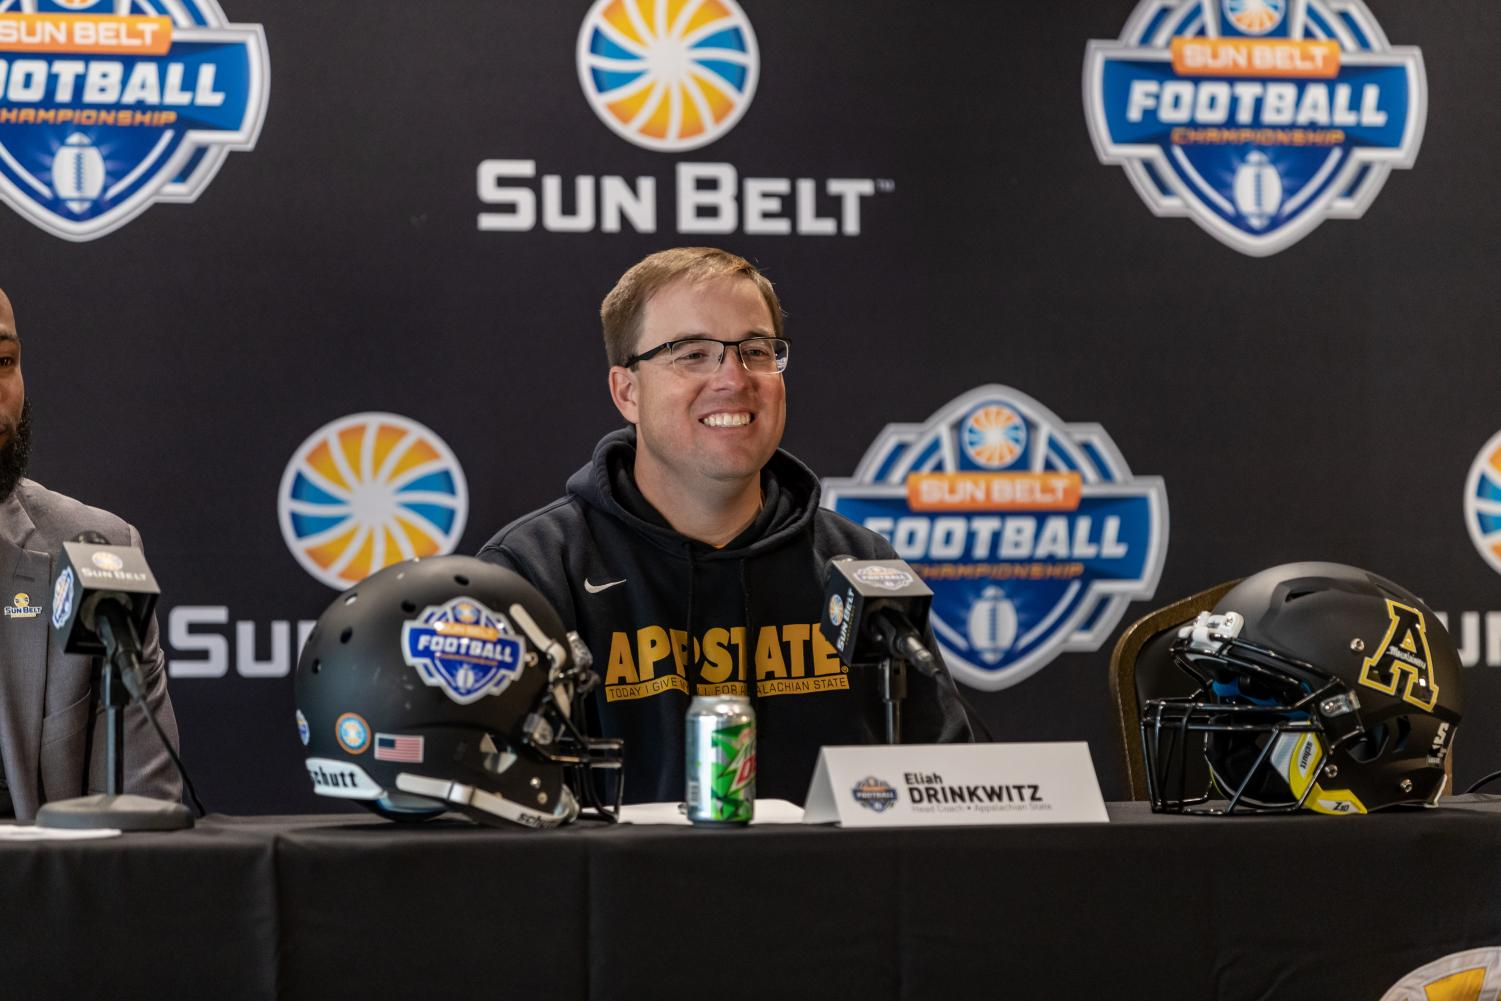 App State head coach Eliah Drinkwitz during Friday afternoon's championship press conference.